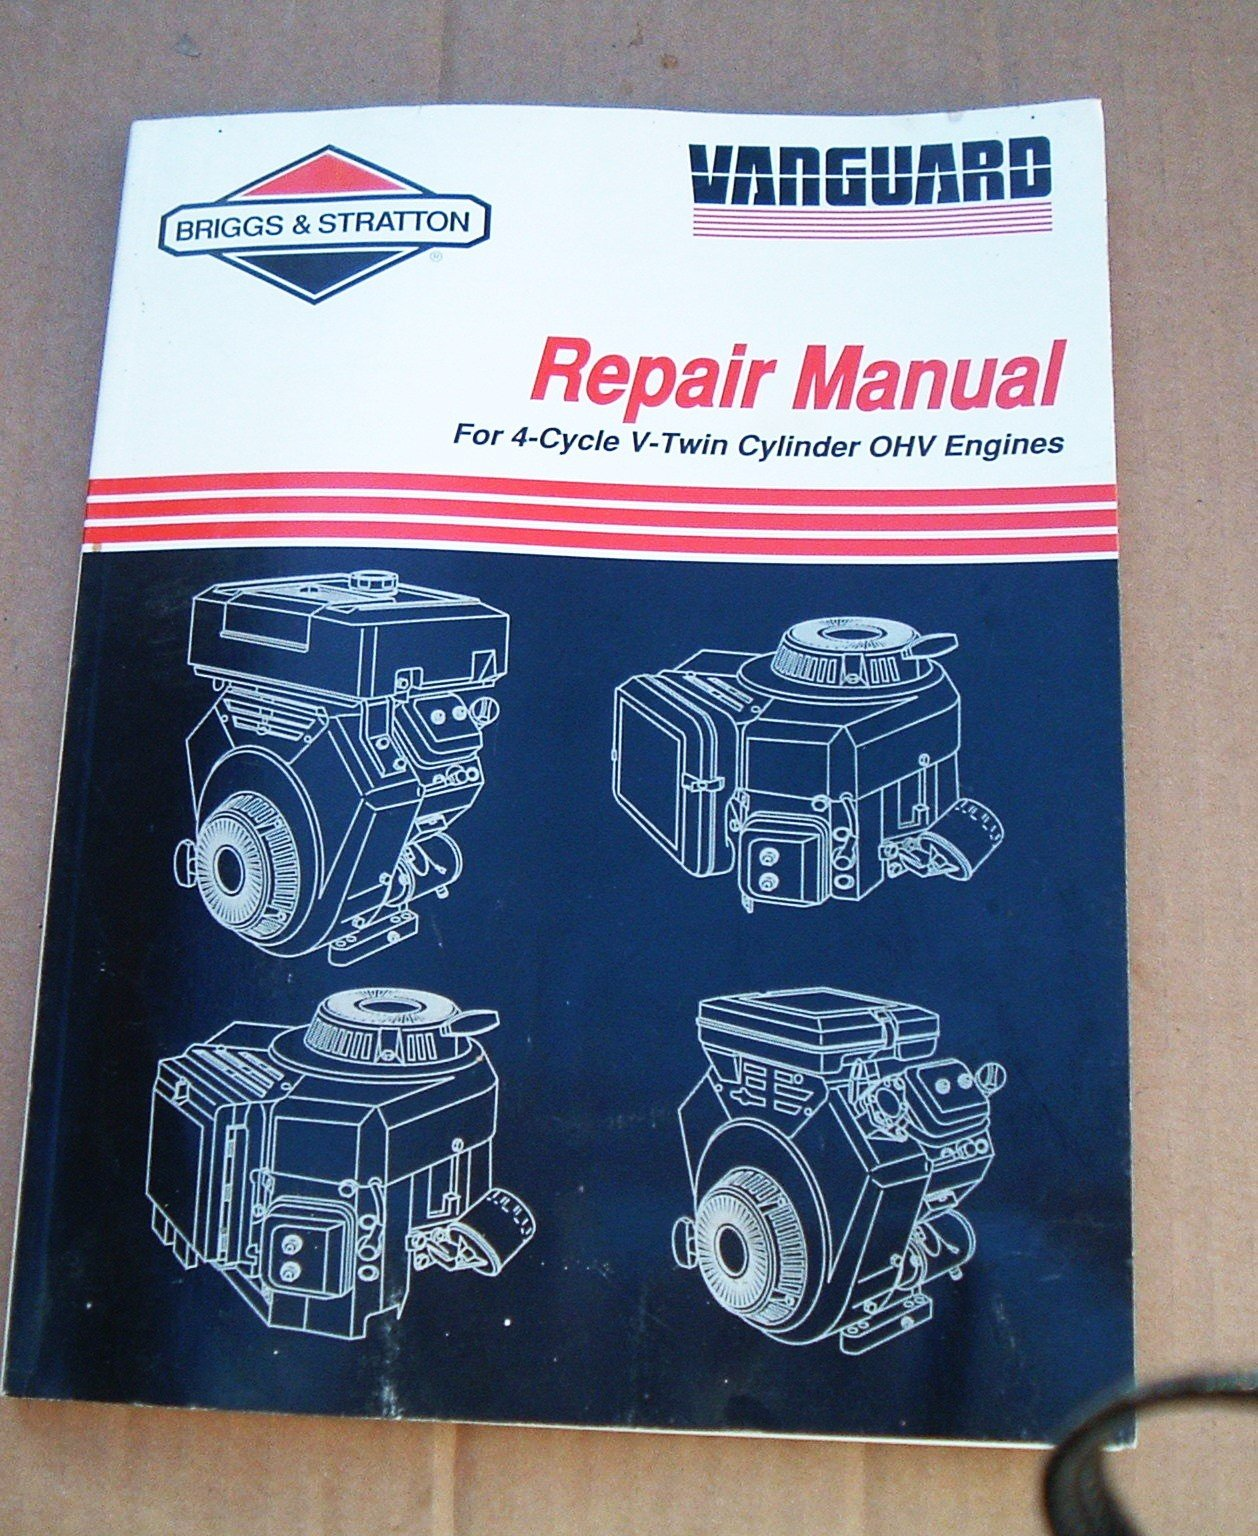 briggs stratton vanguard service and repair manual for 4 cycle v rh amazon  com Briggs and Stratton Parts Briggs and Stratton Engine Numbers